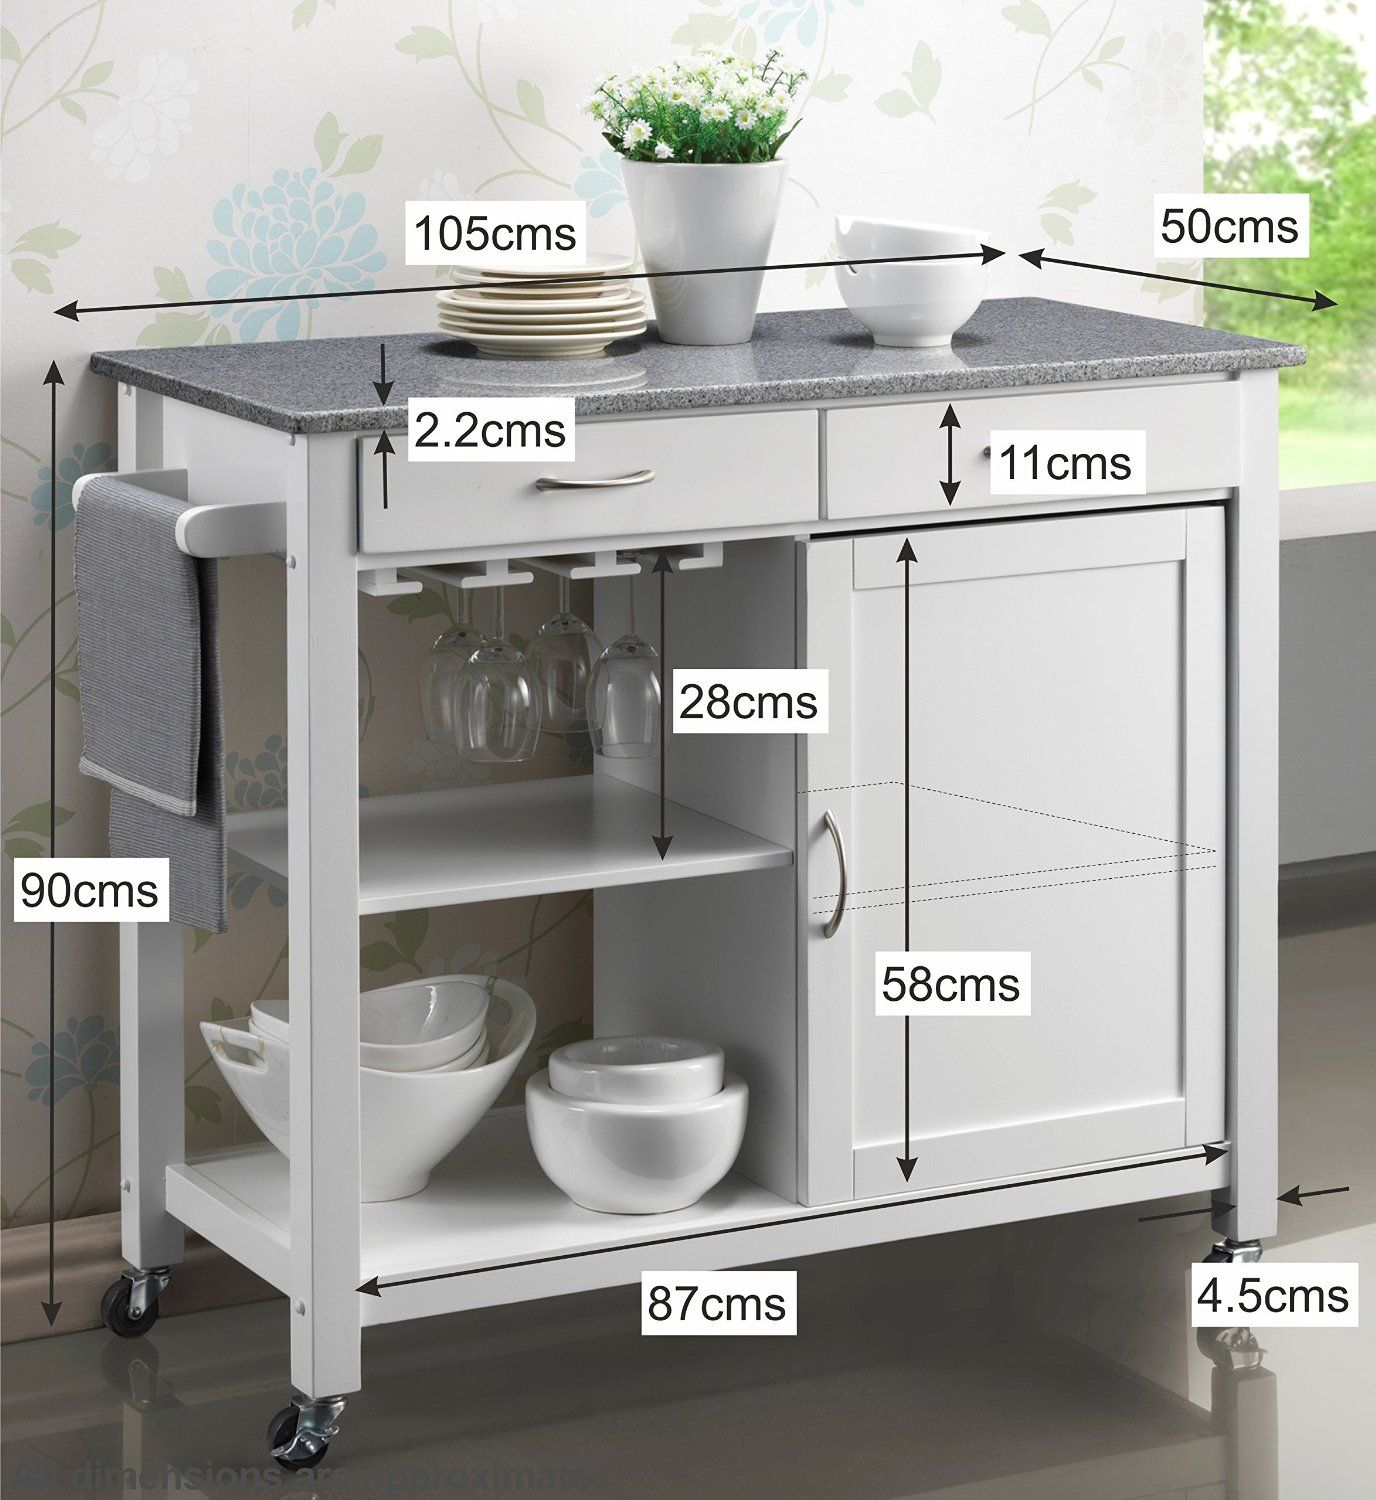 harrogate white painted hevea hardwood kitchen trolley island with grey granite top large island cart 105cms harrogate white painted hevea hardwood kitchen trolley island with      rh   pinterest com